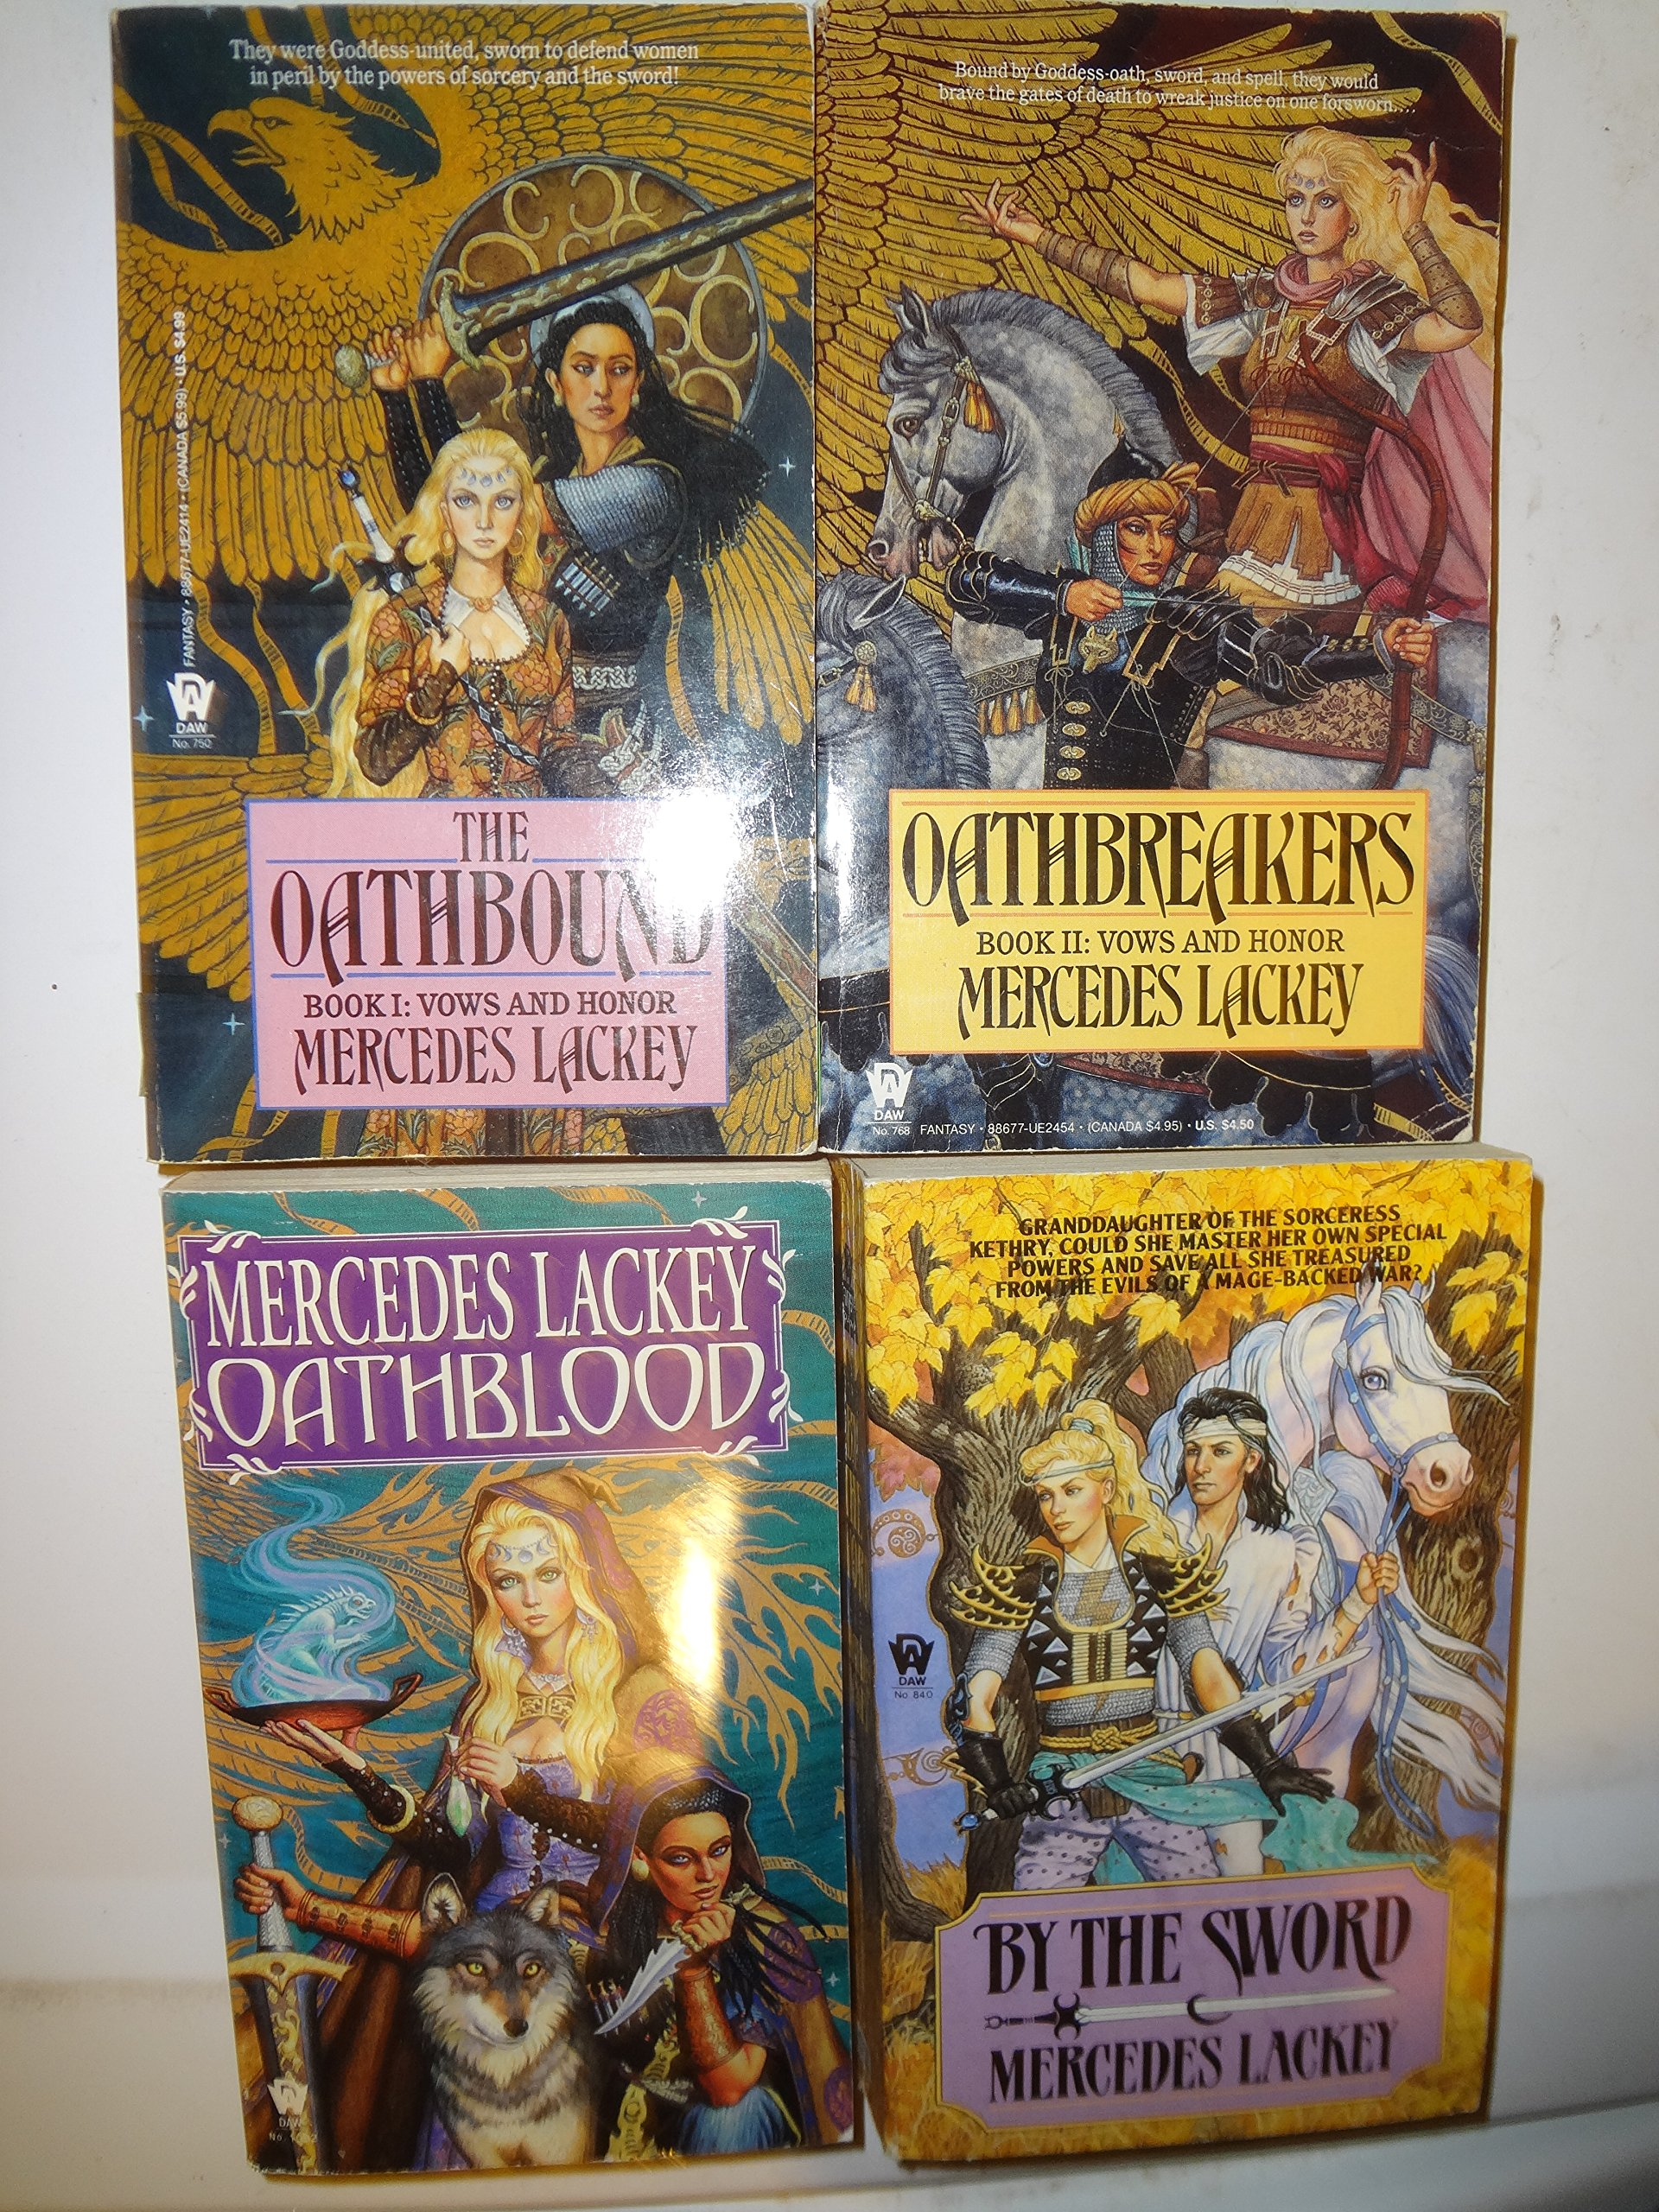 Vows and honor books 1 2 3 the oathbound the oathbreakers vows and honor books 1 2 3 the oathbound the oathbreakers oathblood mercedes lackey amazon books fandeluxe PDF